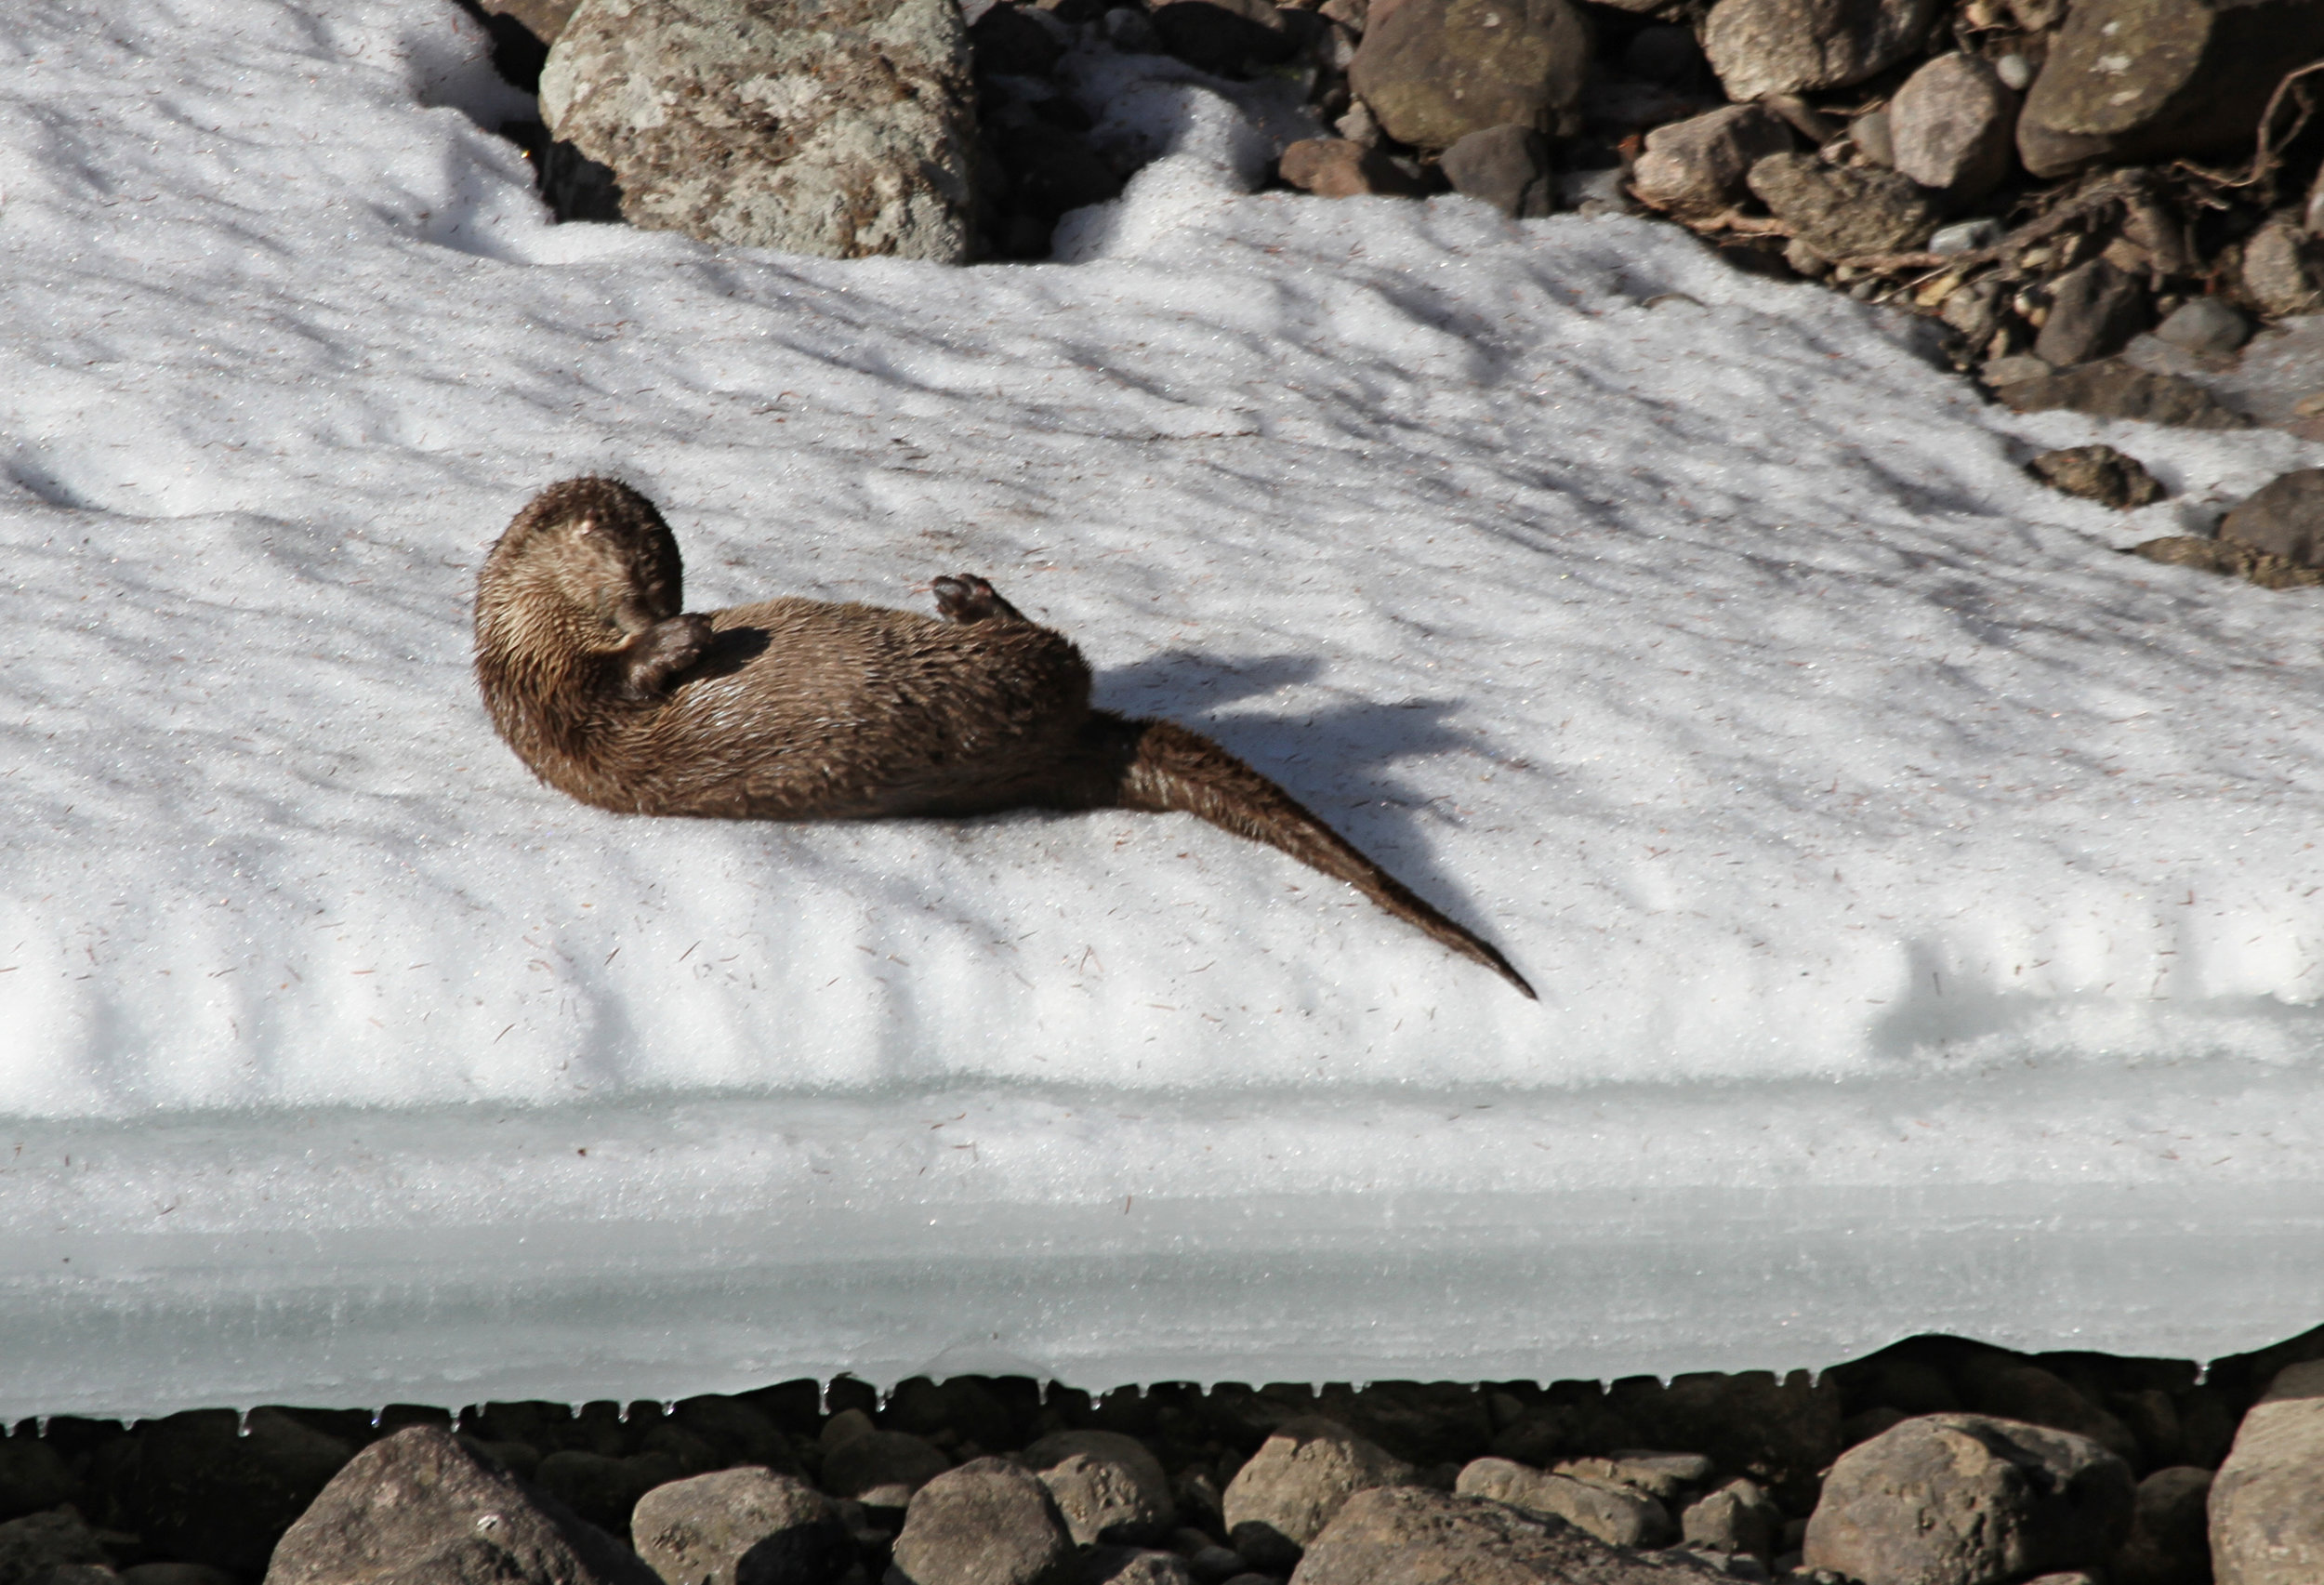 Otter Grooms Herself on a Snowy Bank